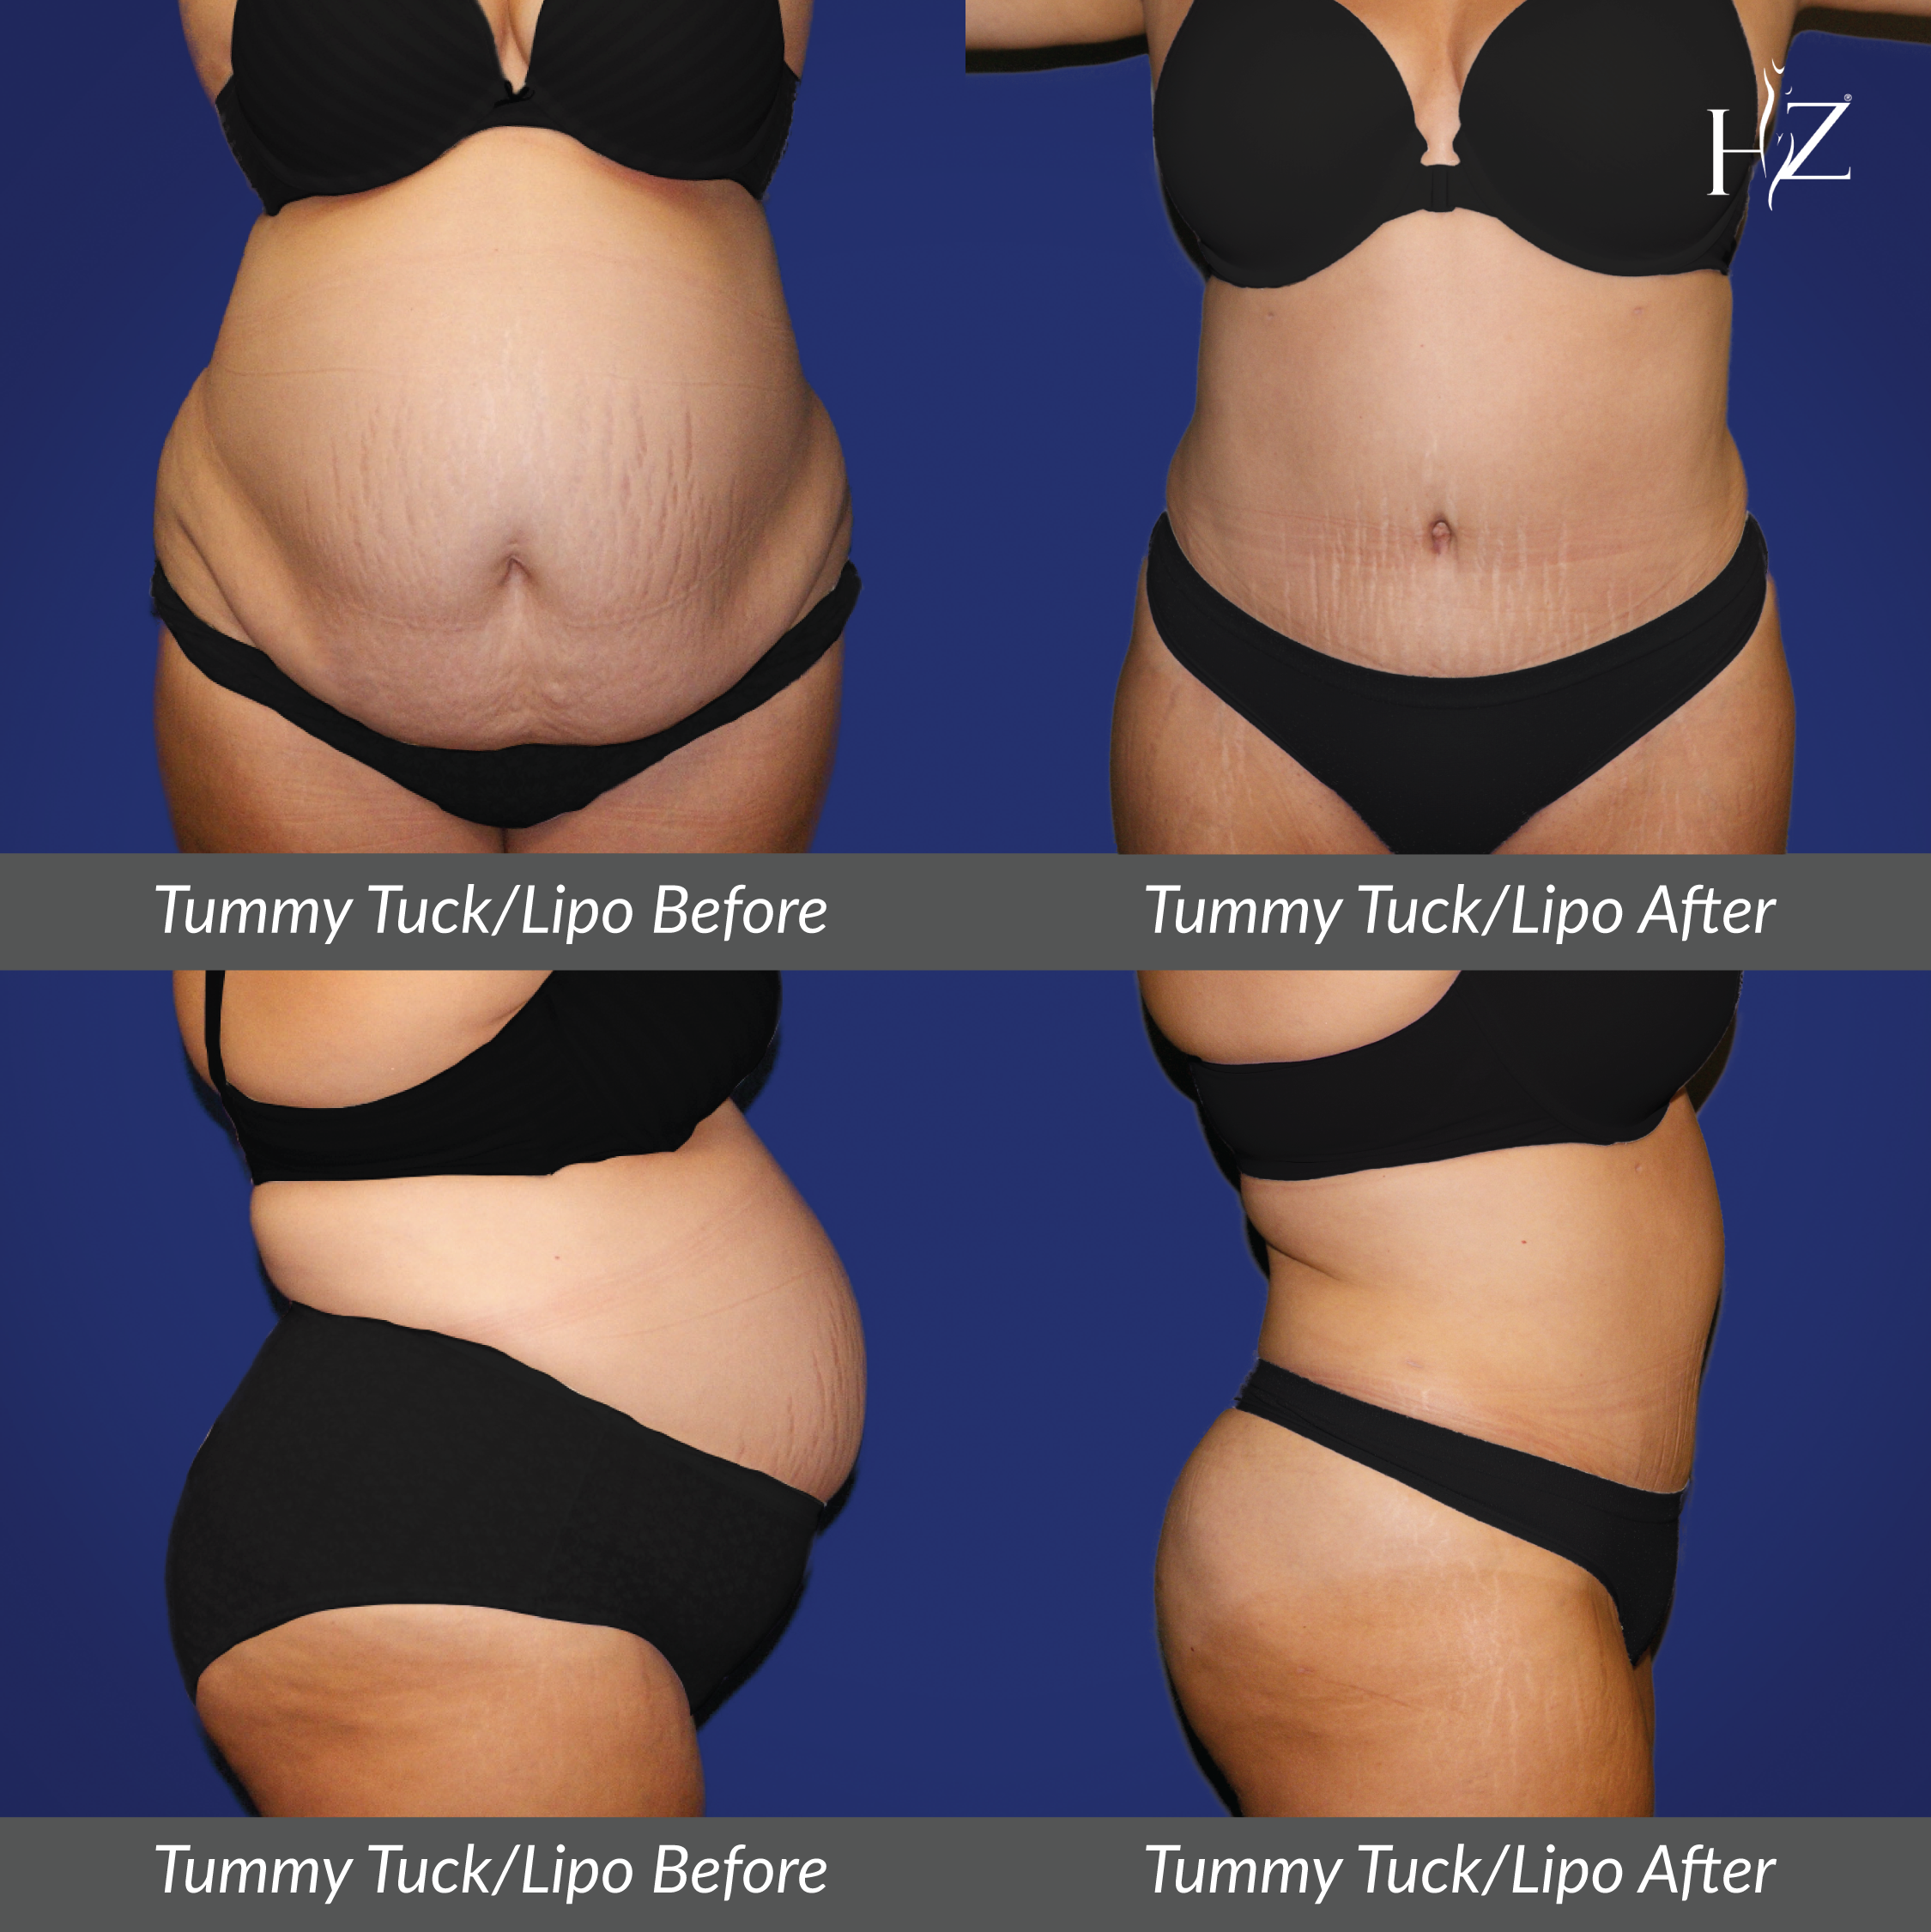 Dr Z At Hz Plastic Surgery In Orlando Performed A Tummy Tuck And Liposuction Our Patient Is 3 Months Post Tummy Tucks Tummy Tuck Before After Plastic Surgery